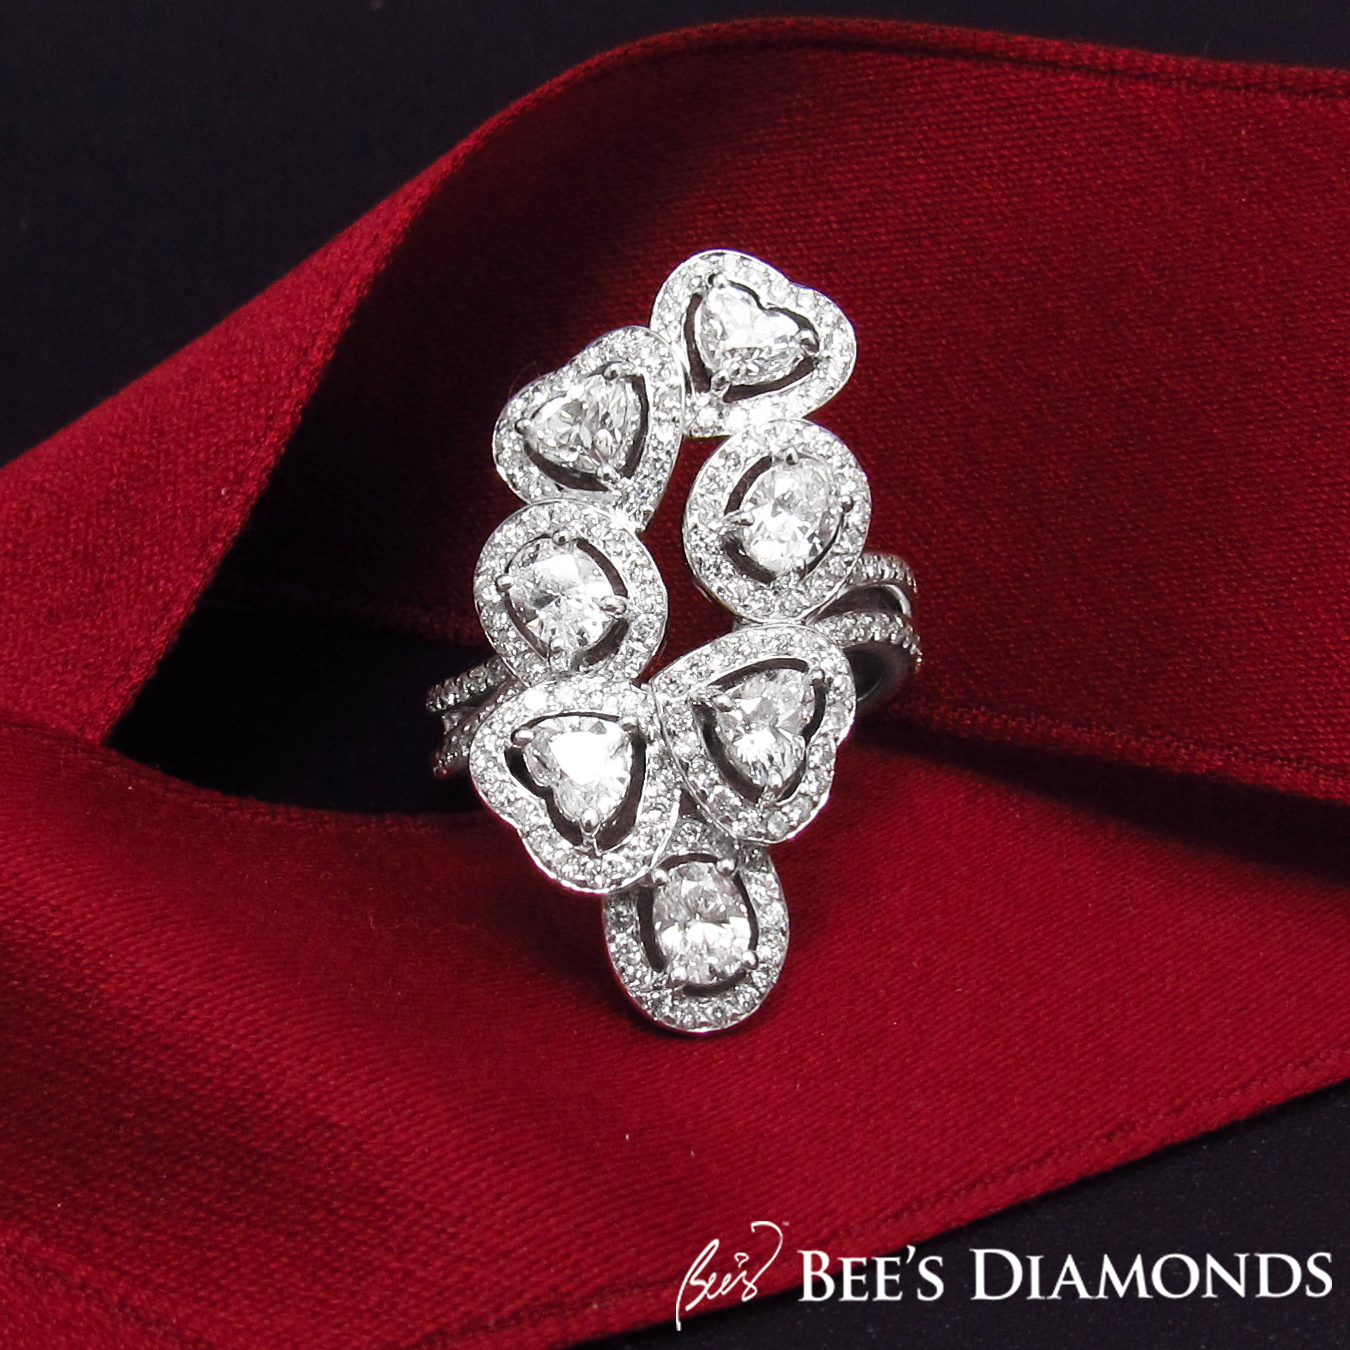 Large and appealing diamond cocktail ring | Bee's Diamonds